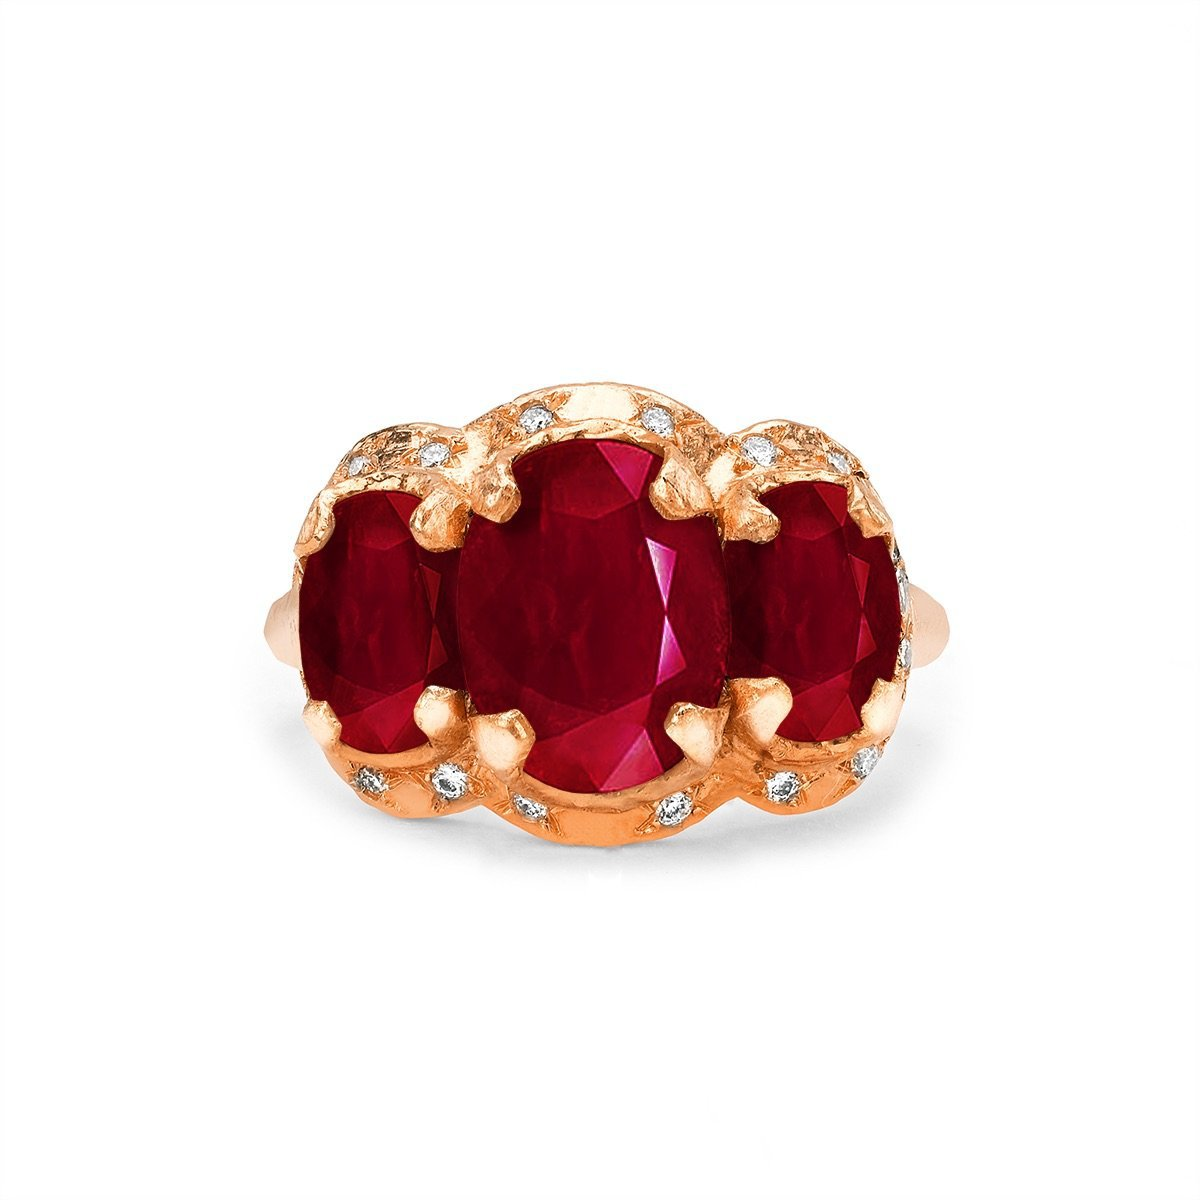 Queen Triple Goddess Ruby Ring with Sprinkled Diamonds